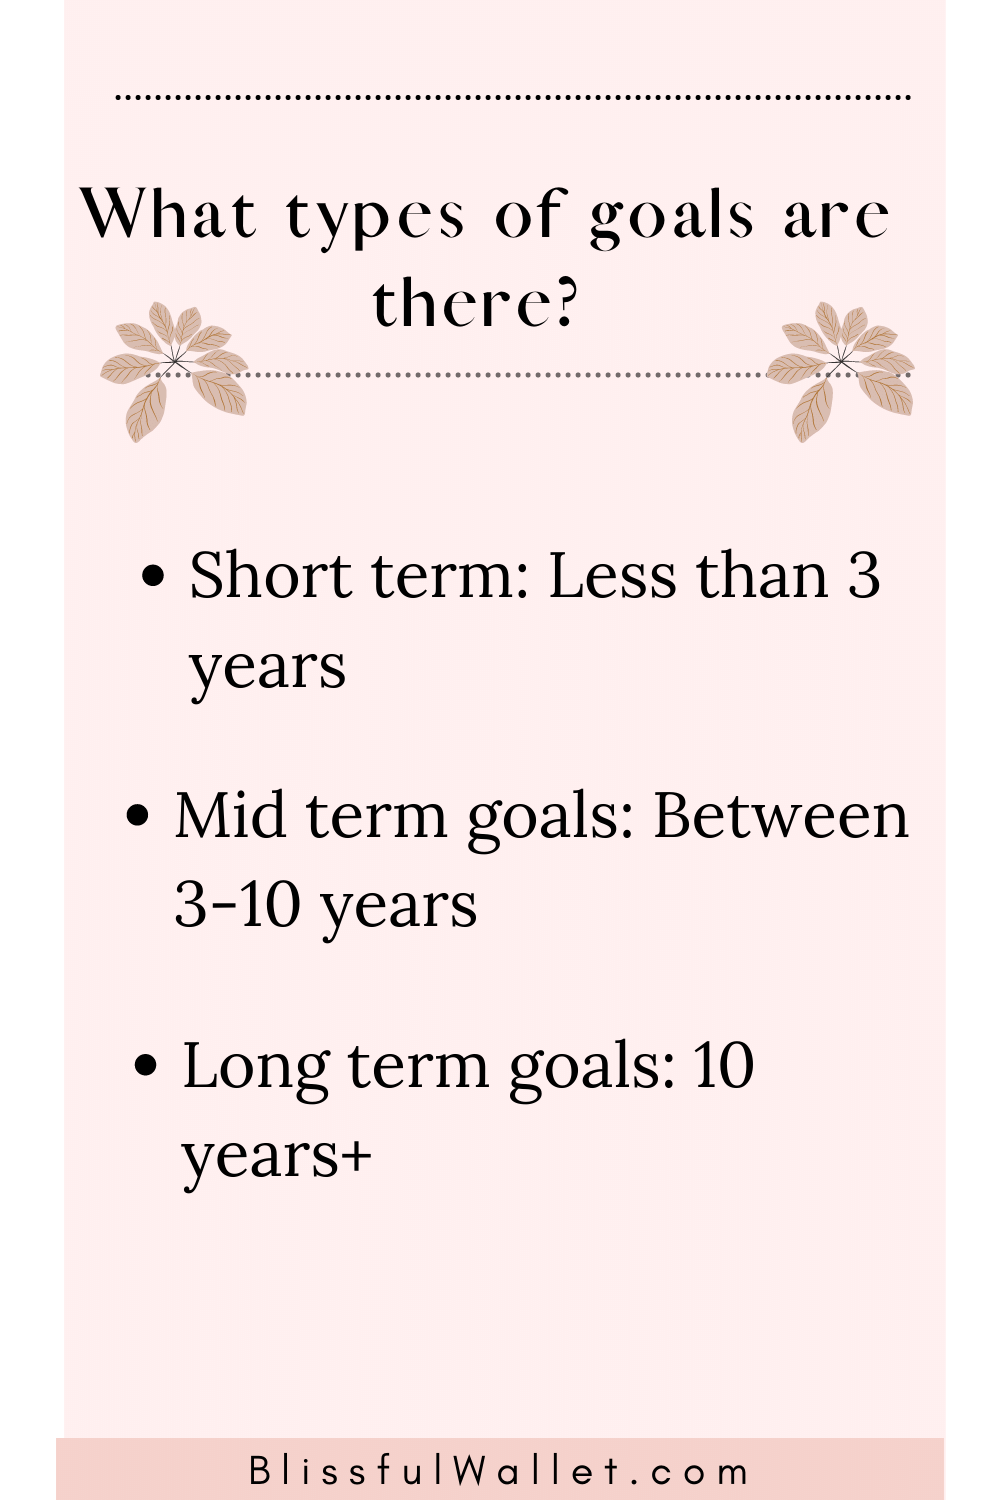 What types of goals are there? Short term, mid term, and long term goals